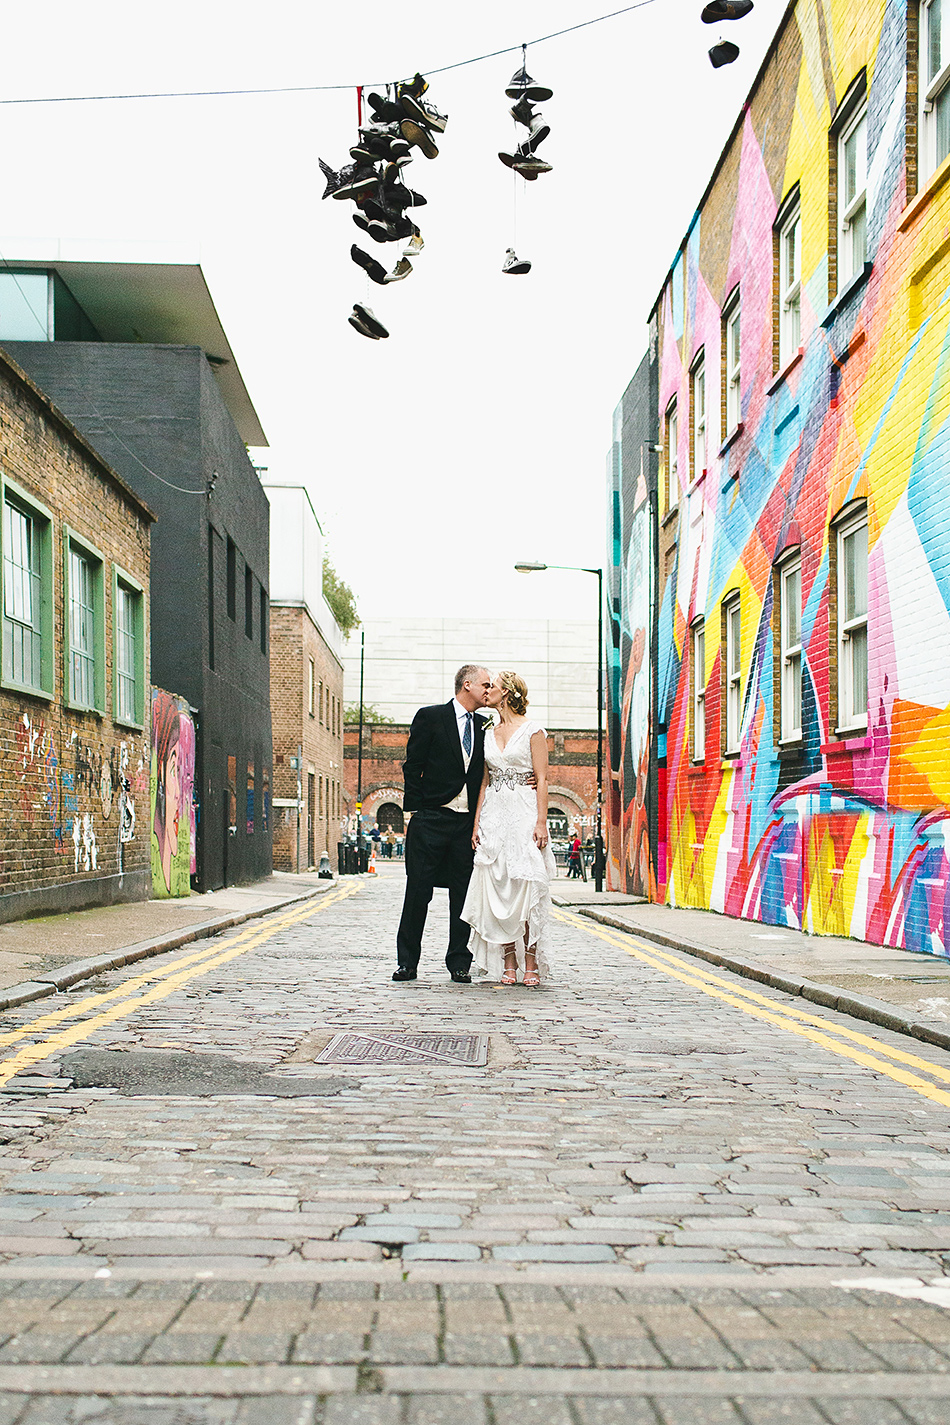 creative wedding photography in the street redchurch street london urban cool wedding photographer